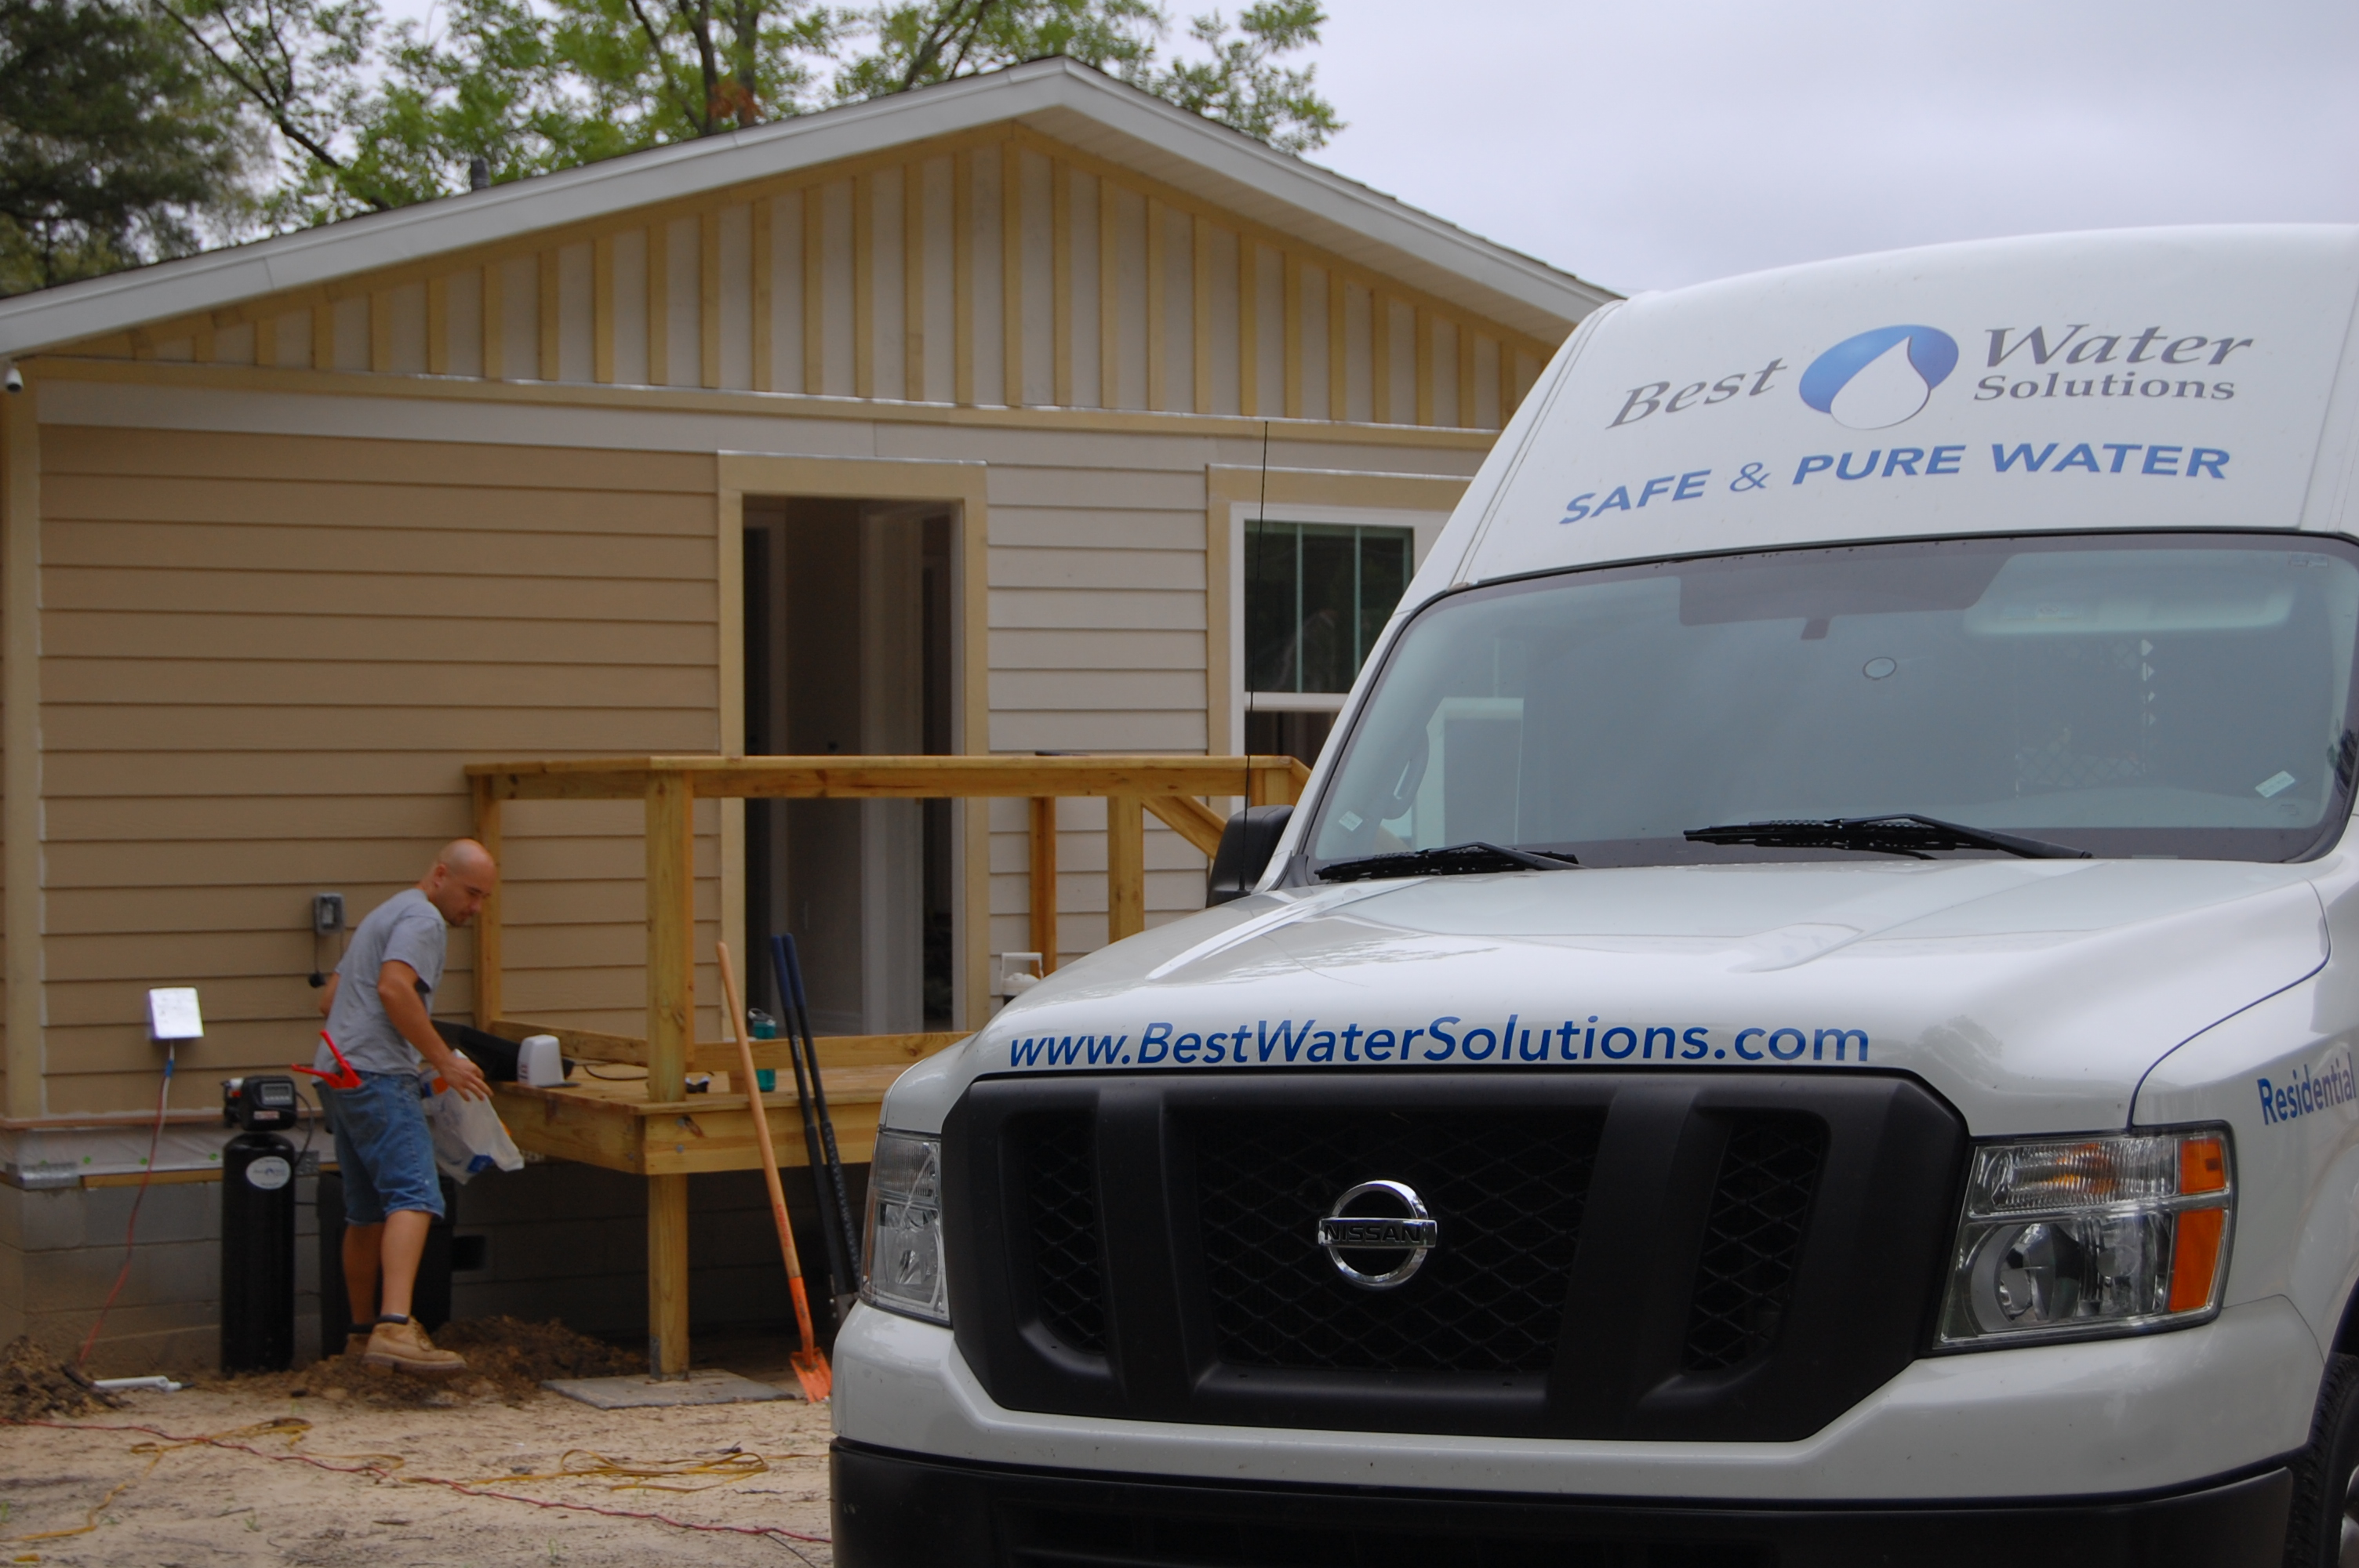 Image of Roy and our truck at the Habitat for Humanity installation project.